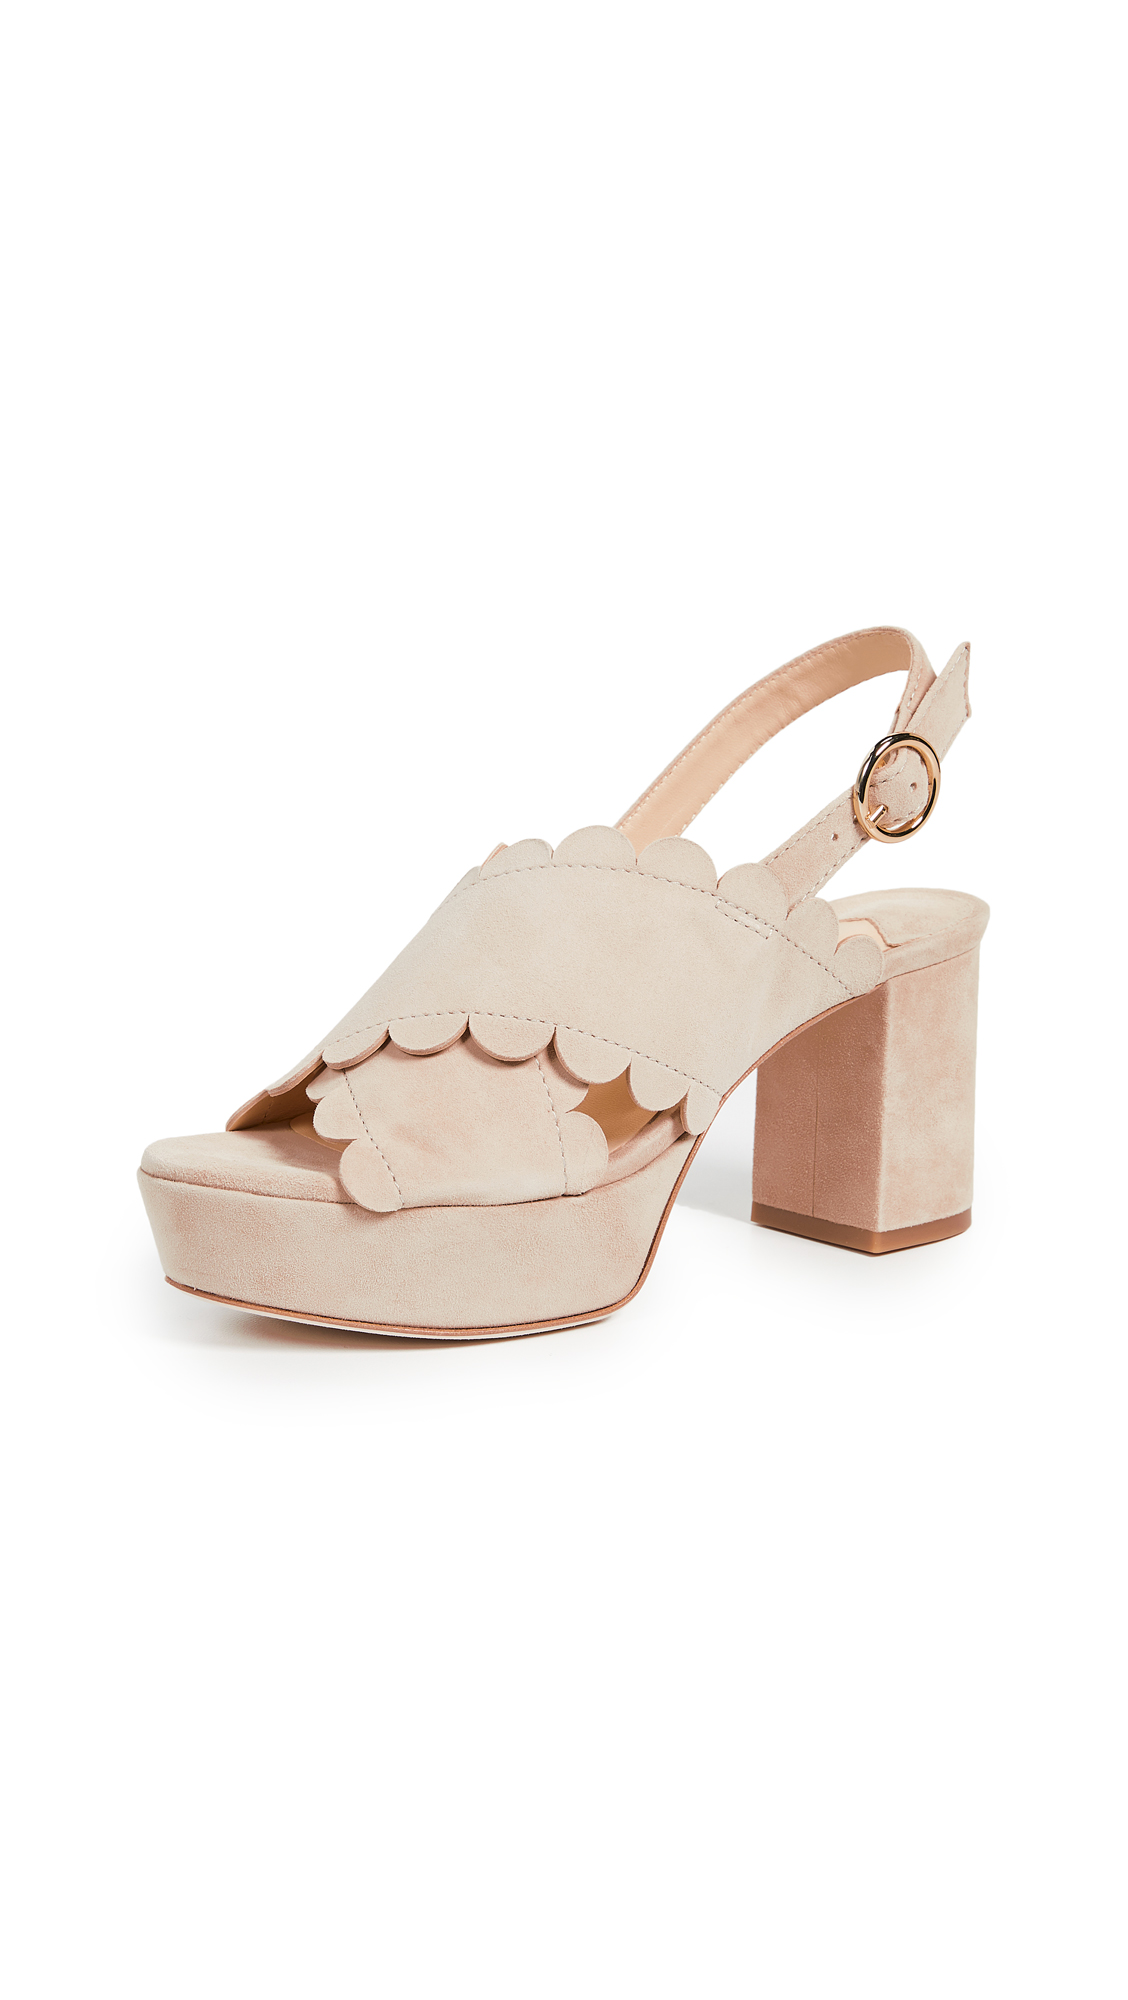 Isa Tapia Perry Platform Sandals - Summer Sand